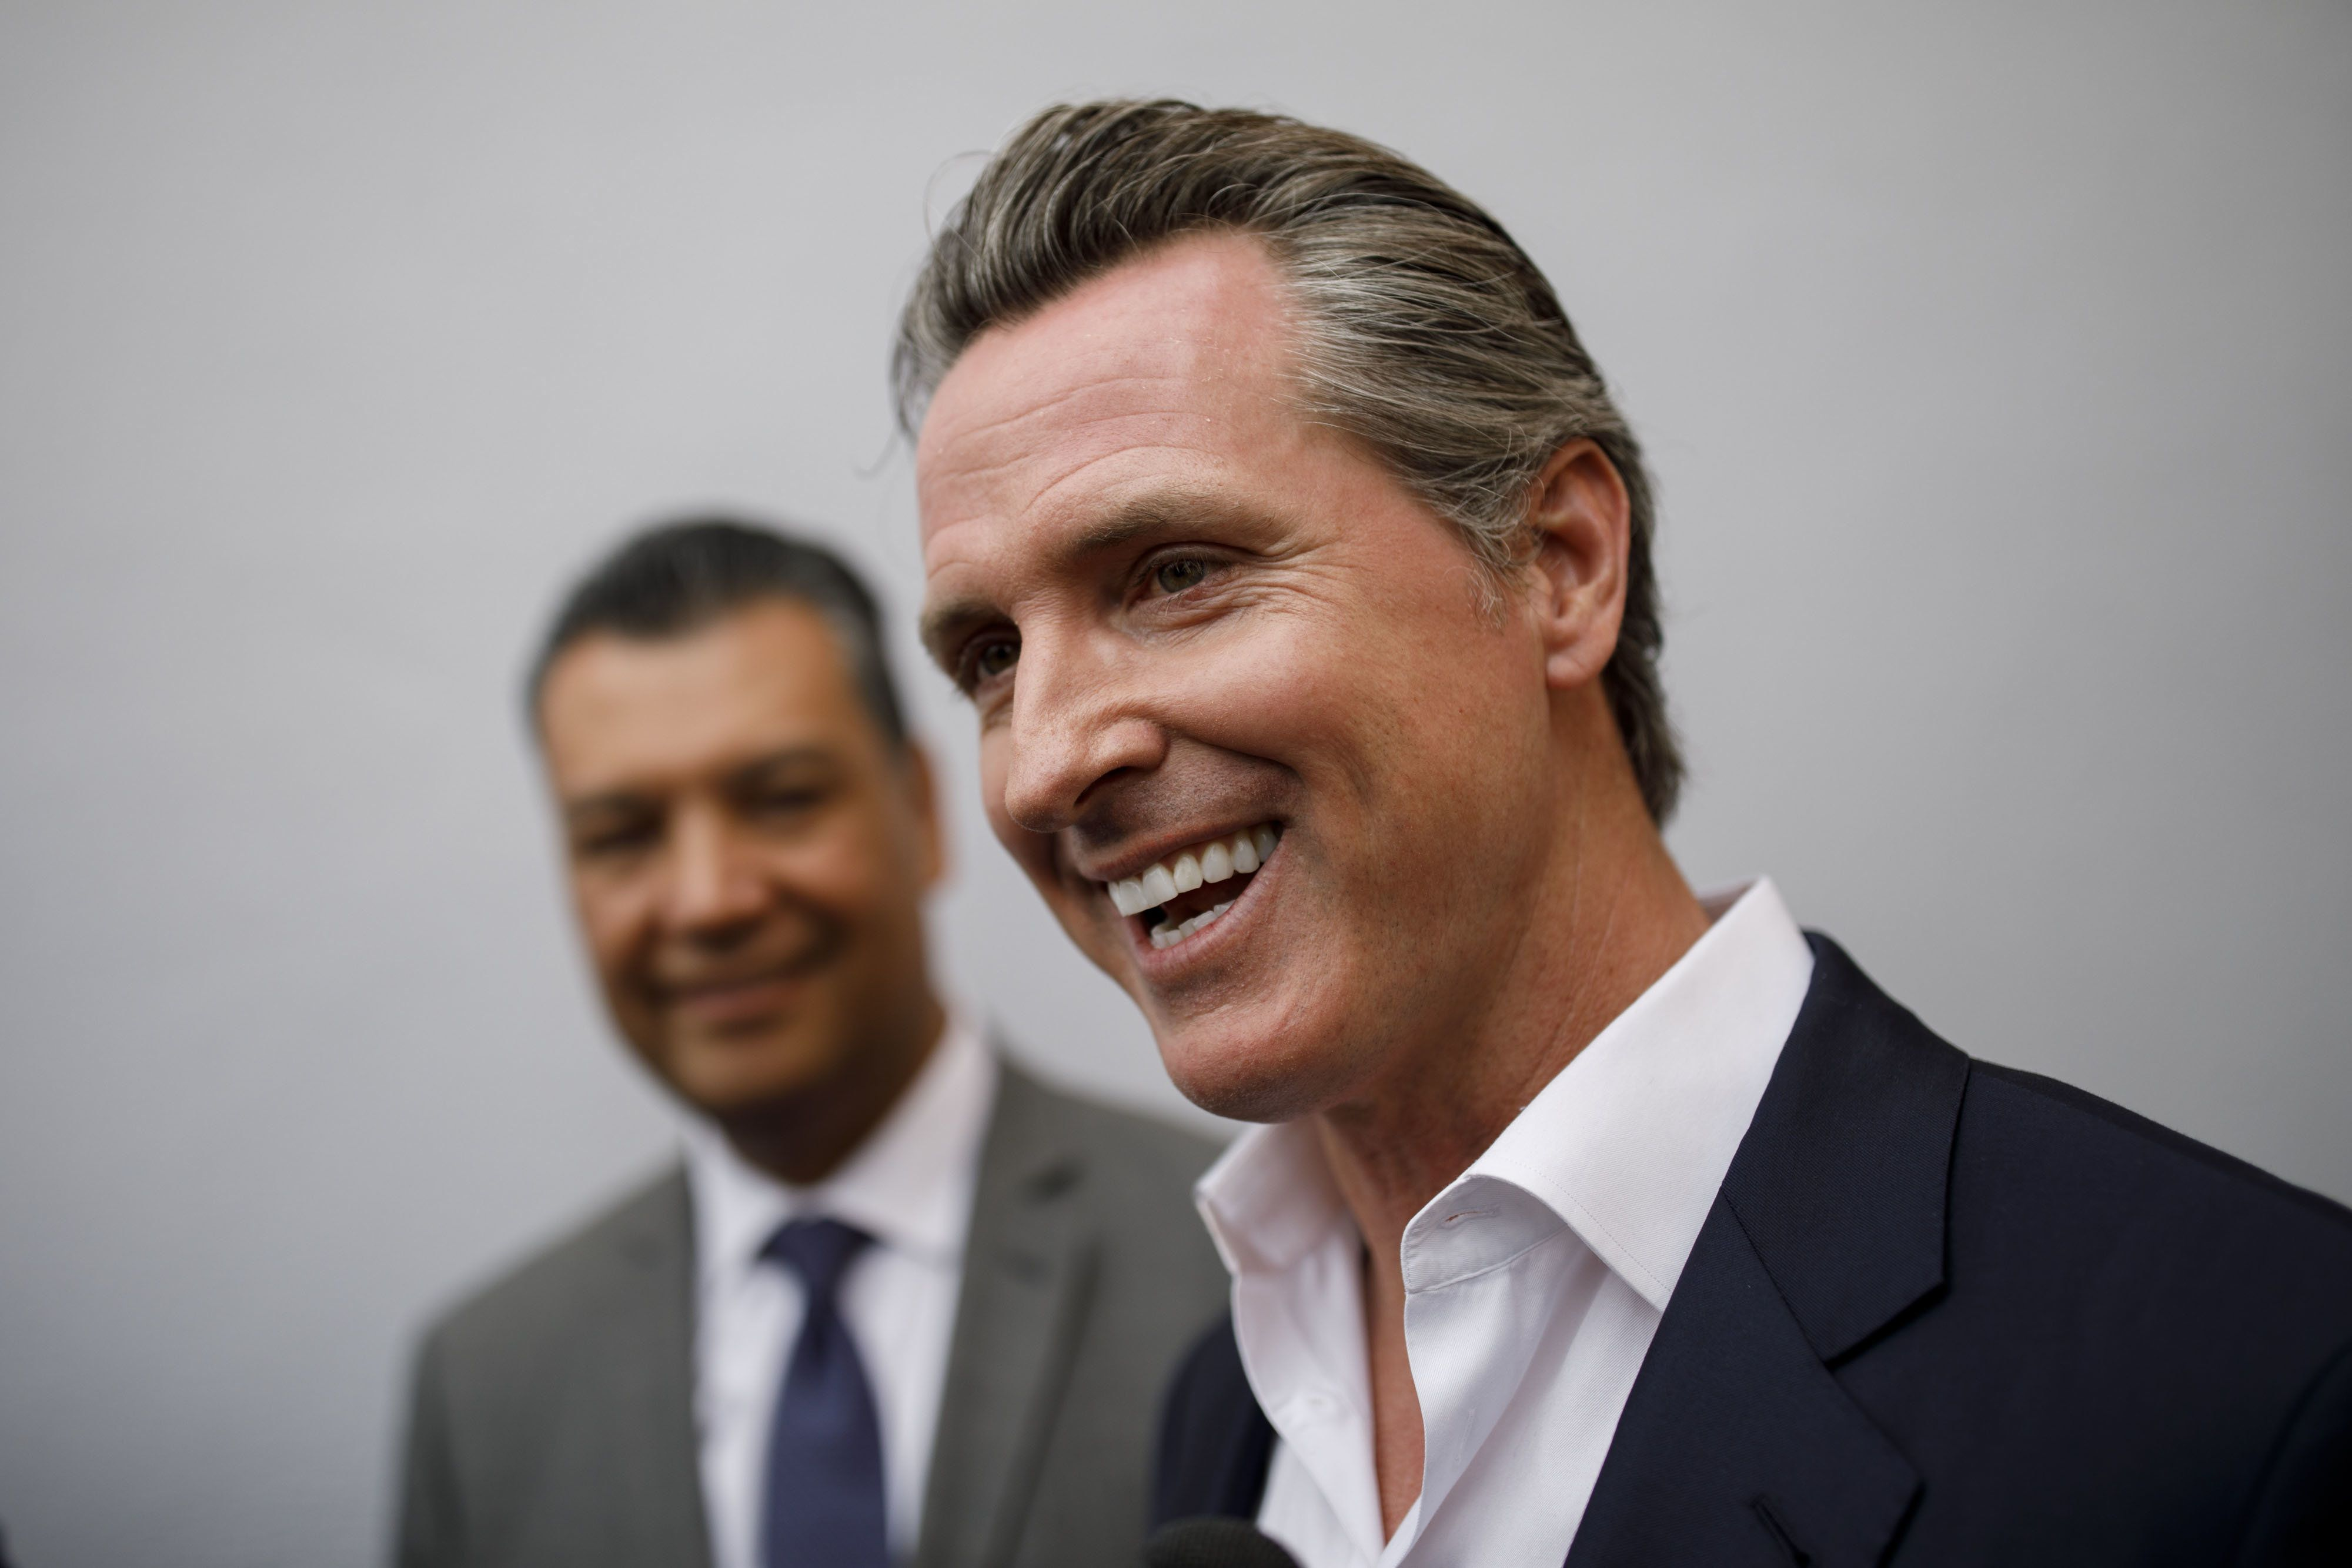 Gavin Newsom, Democratic candidate for governor of California, right, smiles while speaking with members of the media alongside Alex Padilla, California secretary of state, after a rally in Burbank, California, U.S., on Wednesday, May 30, 2018. The Democratic candidates running to replace Governor Jerry Brown -- Lieutenant Governor Newsom, former Los Mayor Antonio Villaraigosa and State Treasurer John Chiang-- have pledged to protect the rights of undocumented immigrants. Photographer: Patrick T. Fallon/Bloomberg via Getty Images